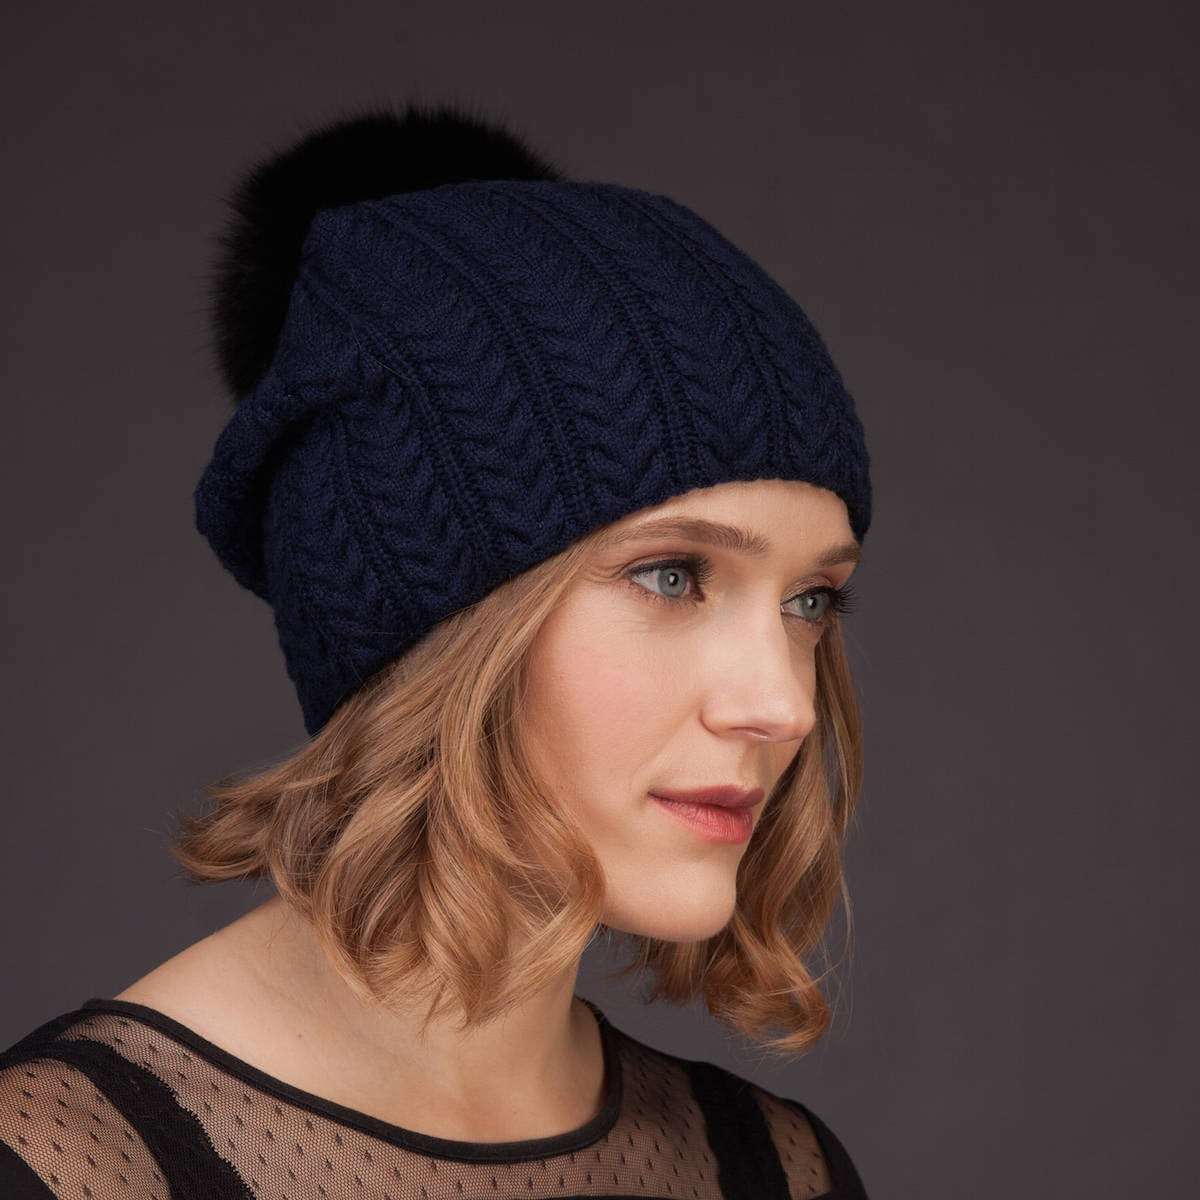 5 CASHMERE MIX KNITTED BOBBLE HATS LEFT